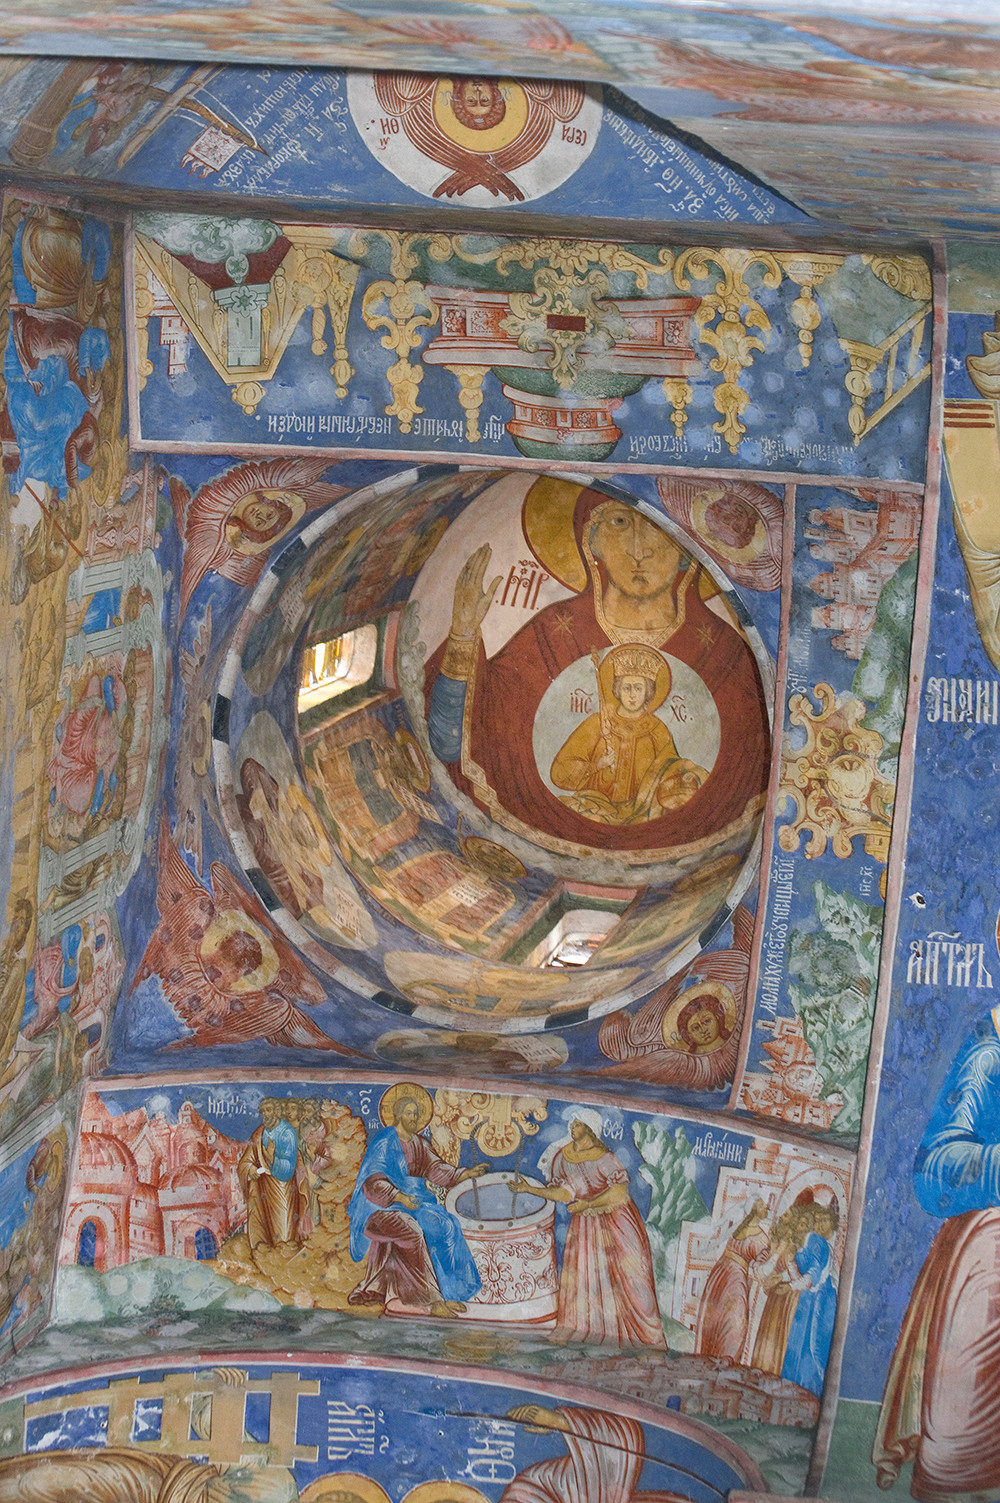 Yaroslavl. Church of Elijah the Prophet. Northwest ceiling vault & dome with fresco of Mary & Christ Child